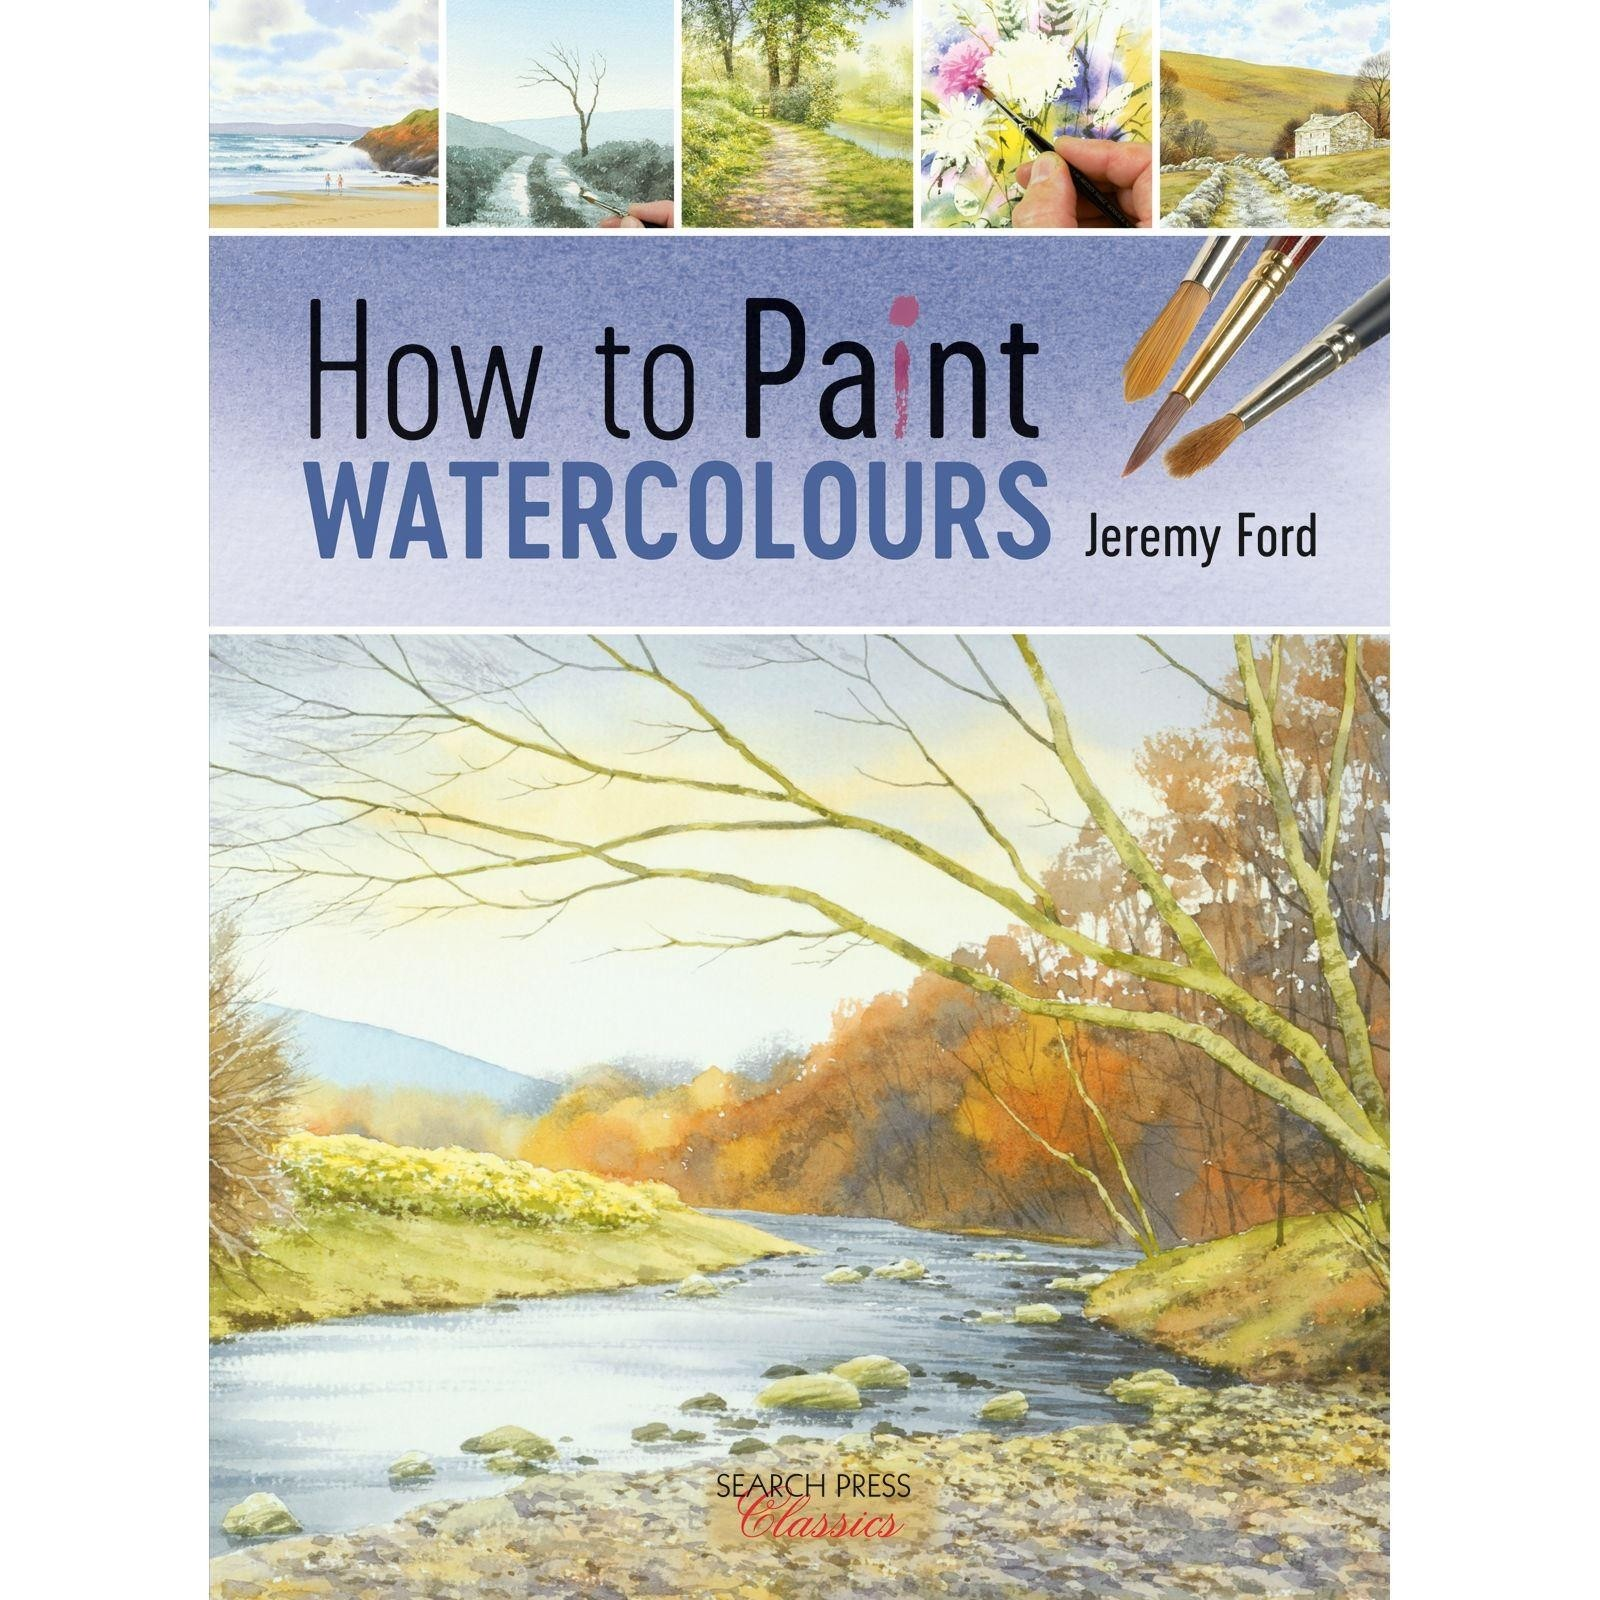 How to paint watercolours by Jeremy Ford